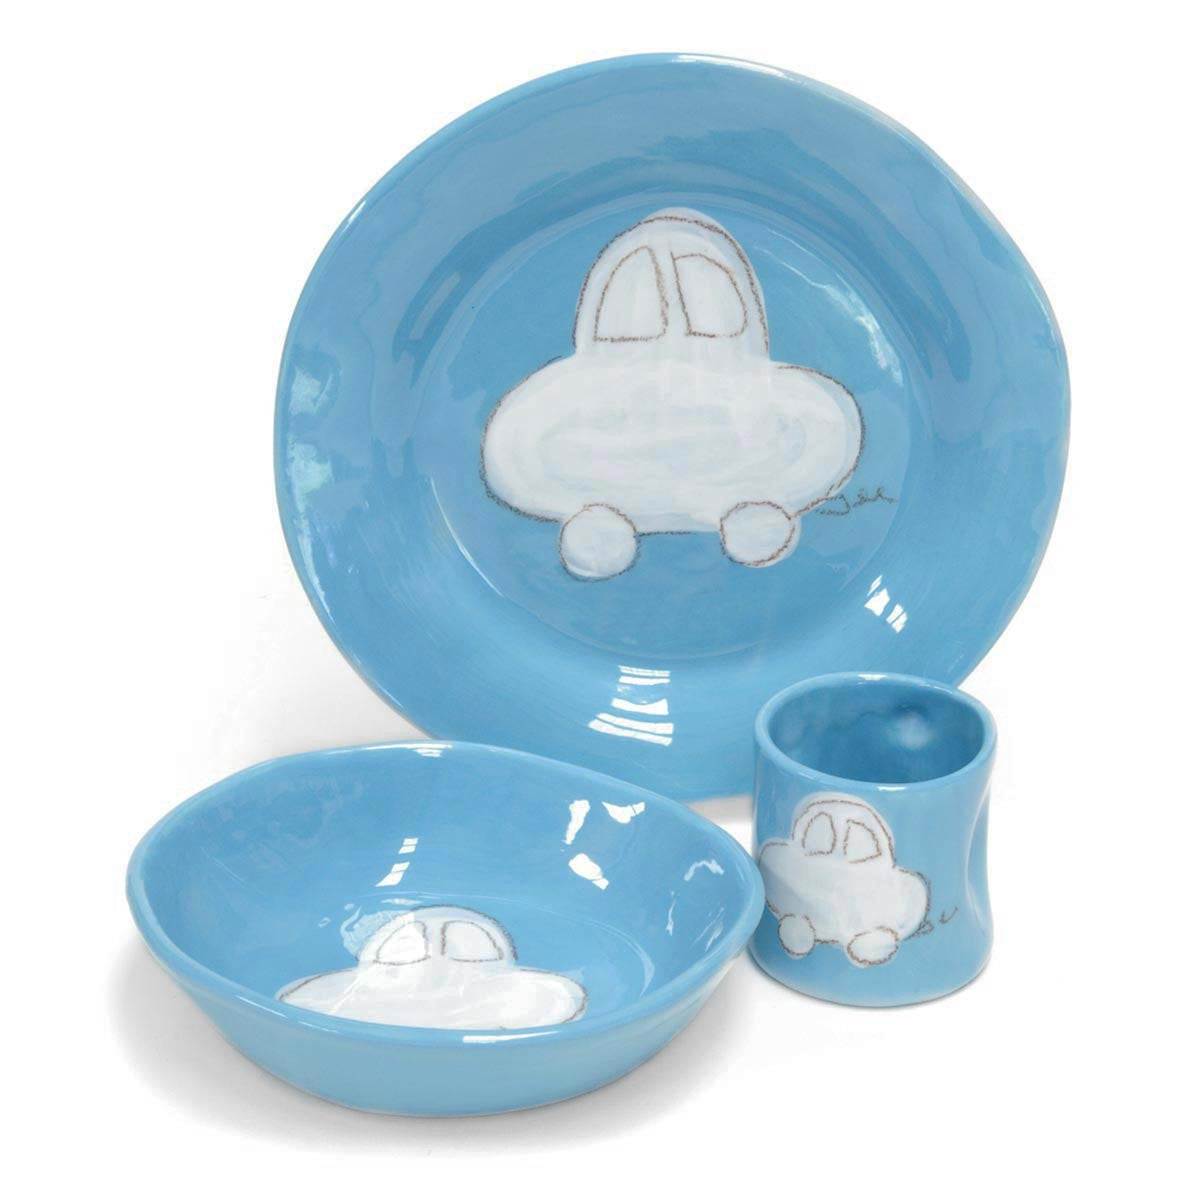 alex marshall studios bubble car 3 piece dining set